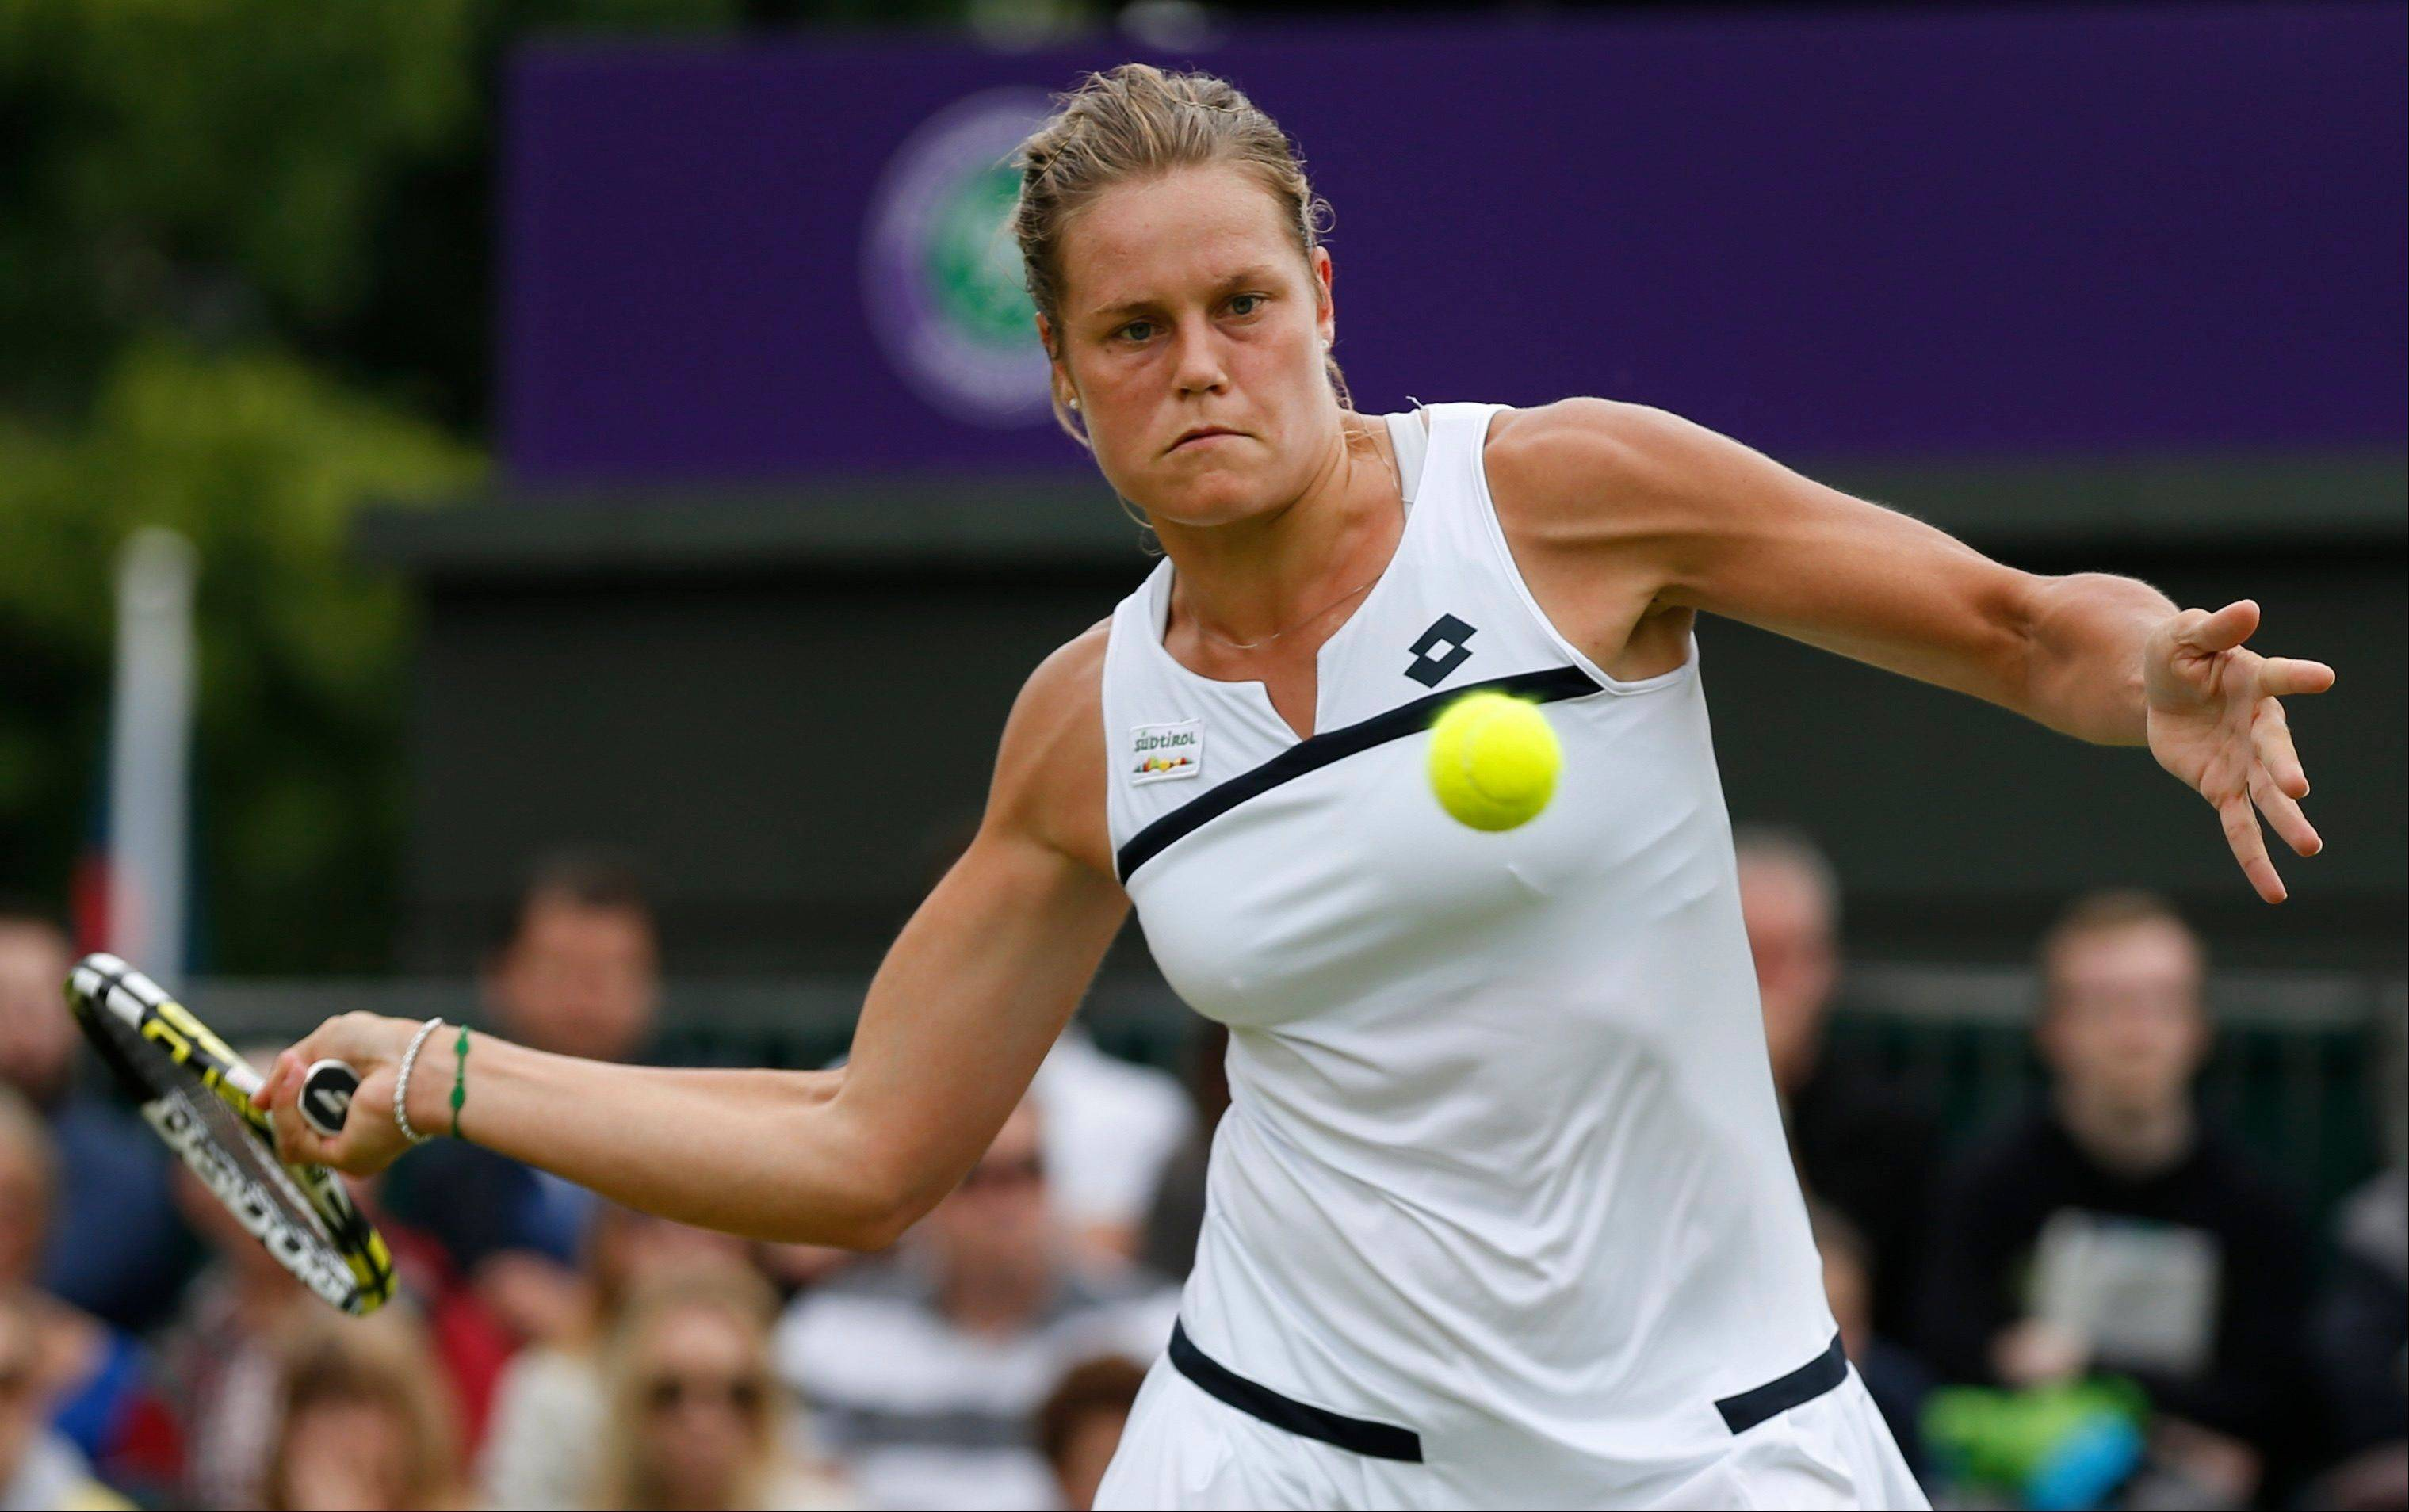 Karin Knapp of Italy returns to Michelle Larcher De Brito of Portugal during their women's singles match Friday at Wimbledon.